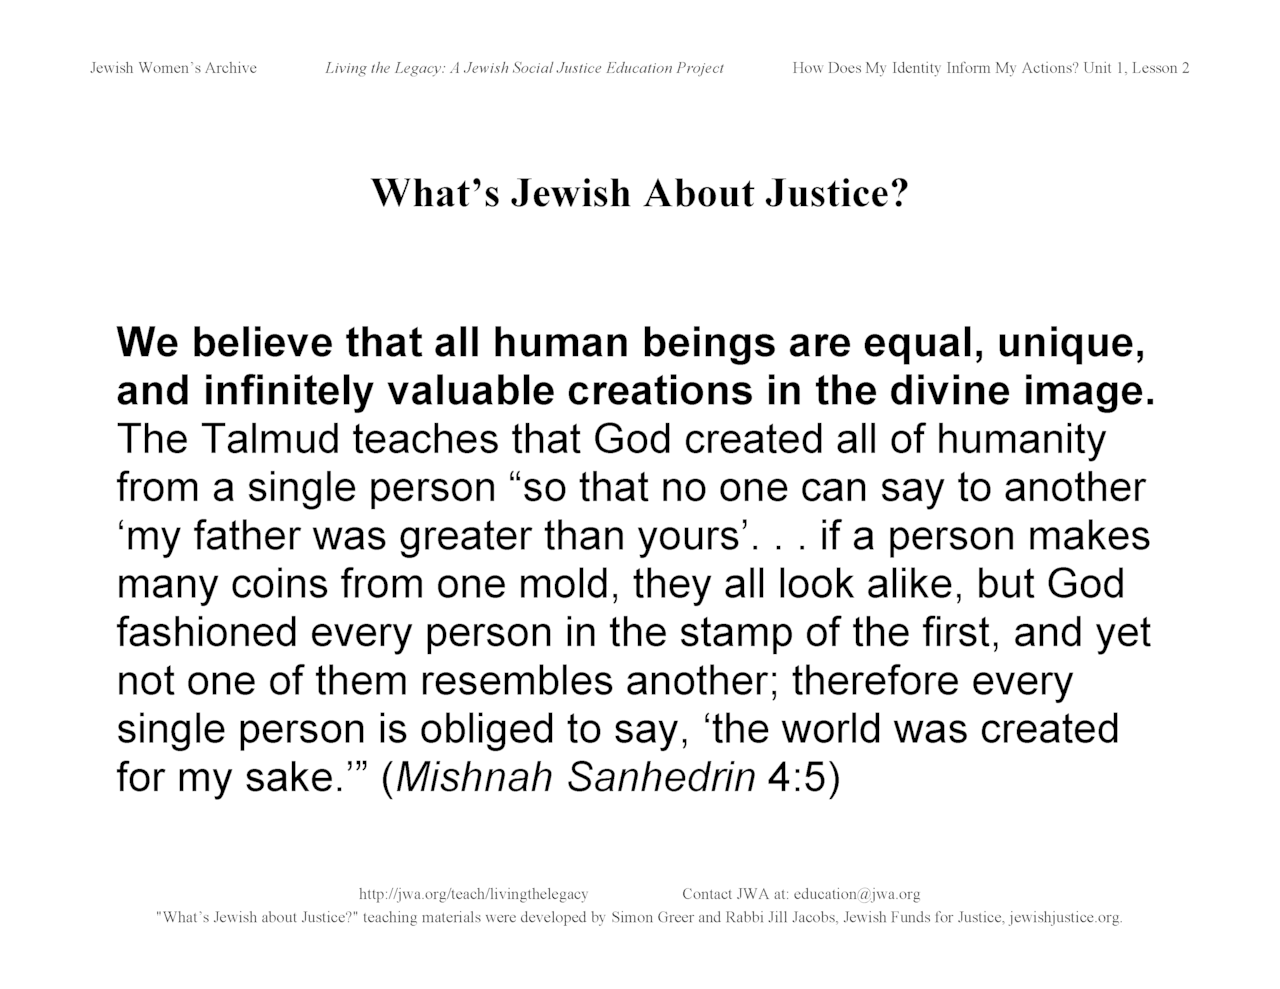 """What's Jewish About Justice?"" signs: We believe that all human beings are equal, unique..."